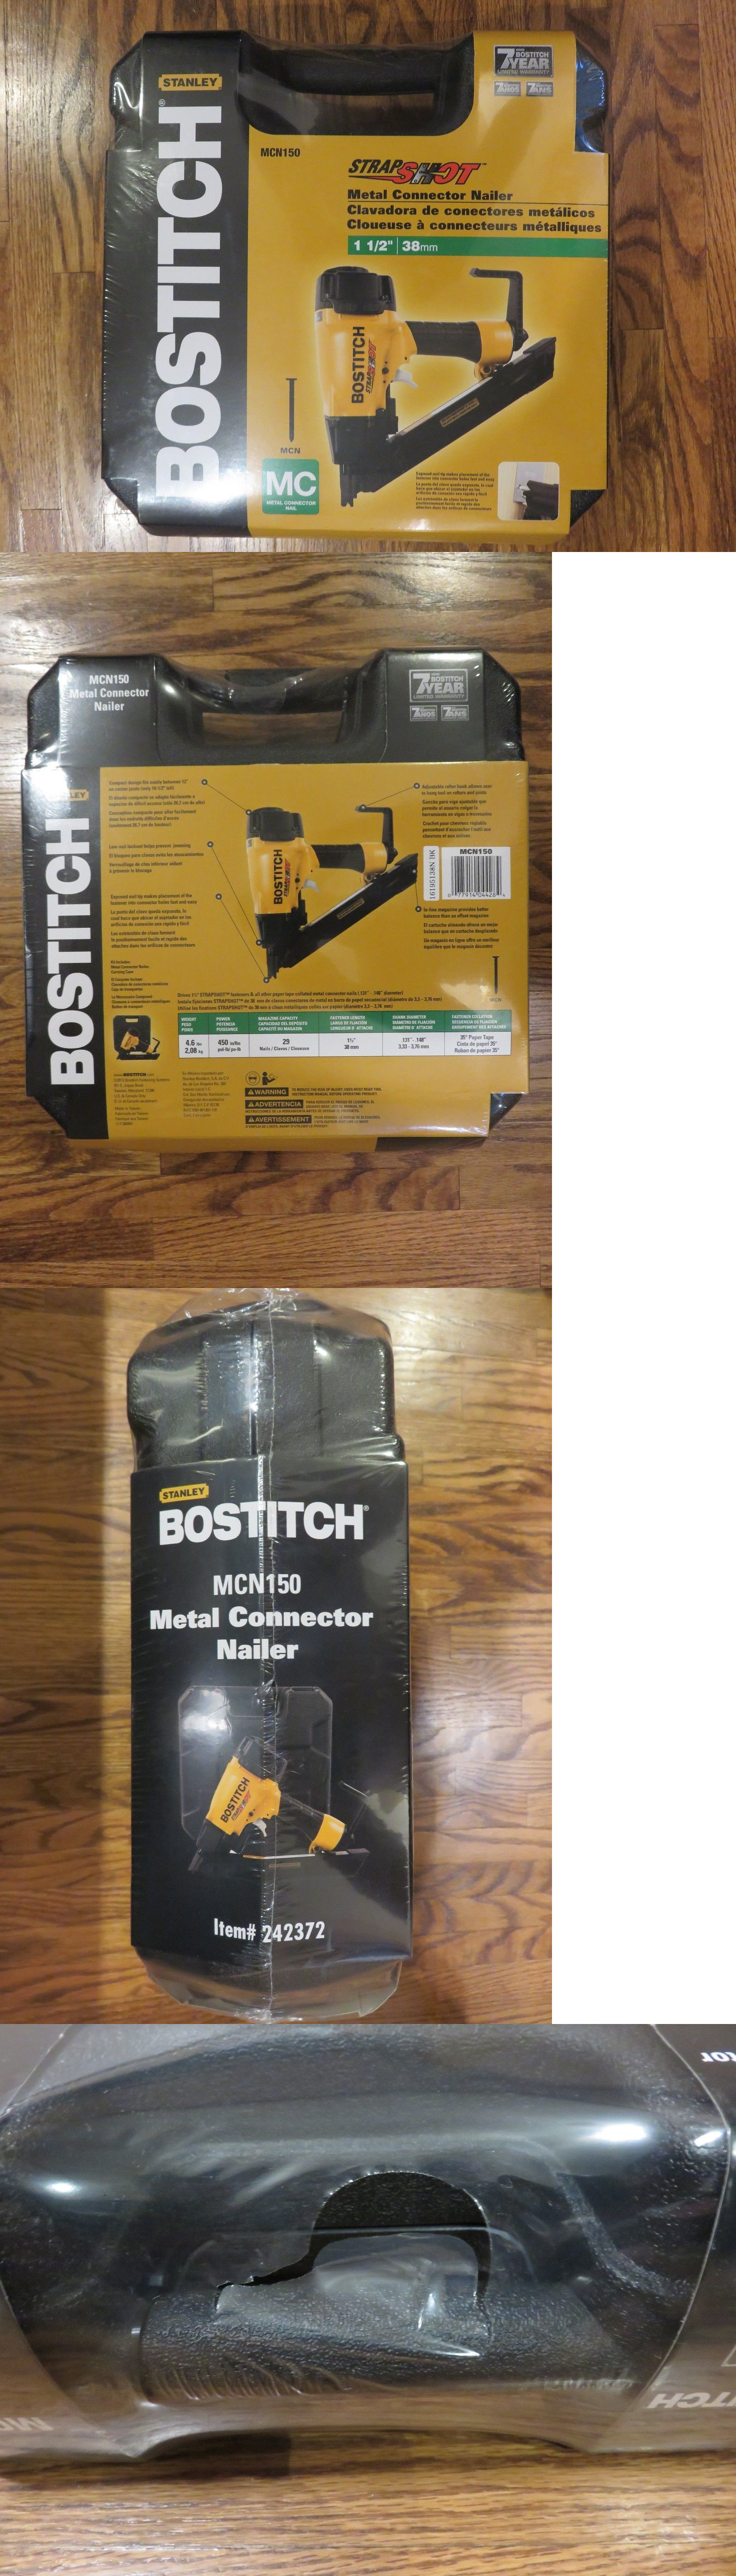 bostitch hardwood floor stapler of framing guns 50378 new in the case bostitch mcn150 strapshot metal with framing guns 50378 new in the case bostitch mcn150 strapshot metal connector nailer